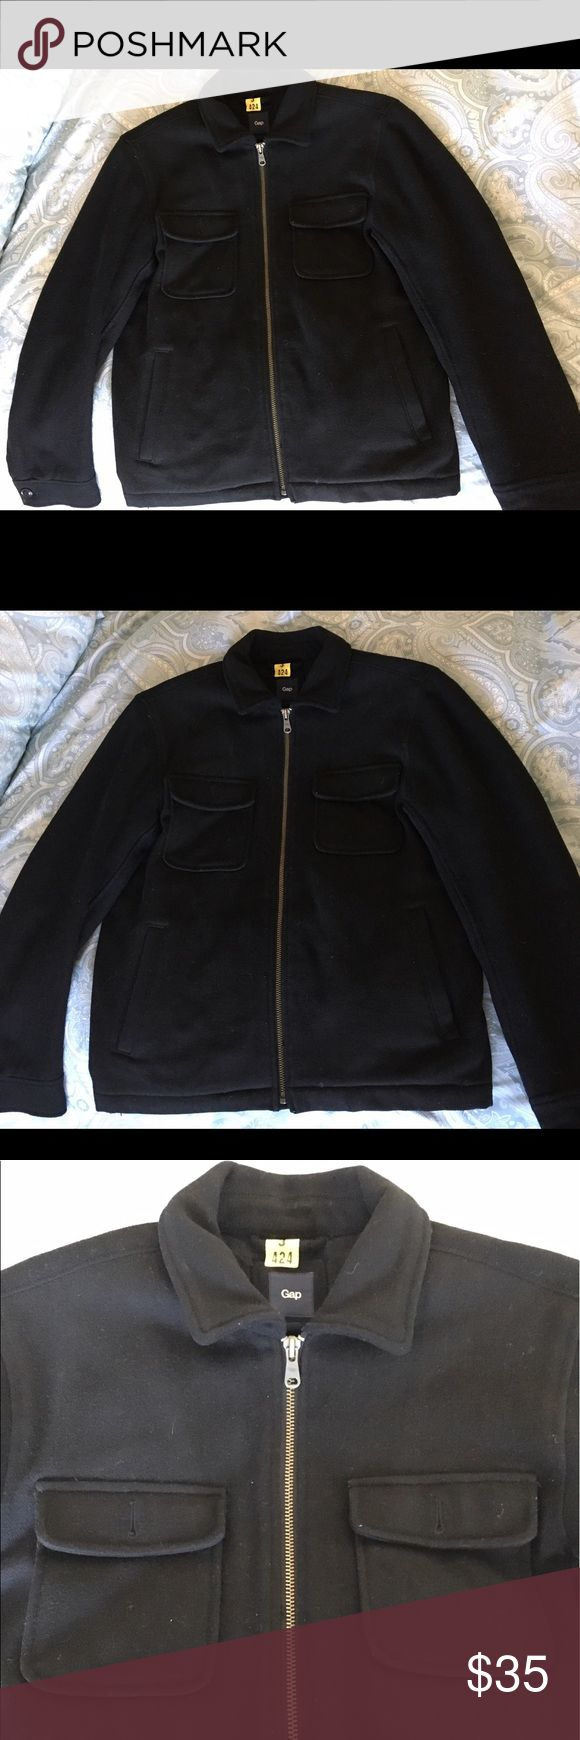 Men's Gap Jacket In like new condition! Warm, nice structure, no flaws GAP Jackets & Coats Pea Coats